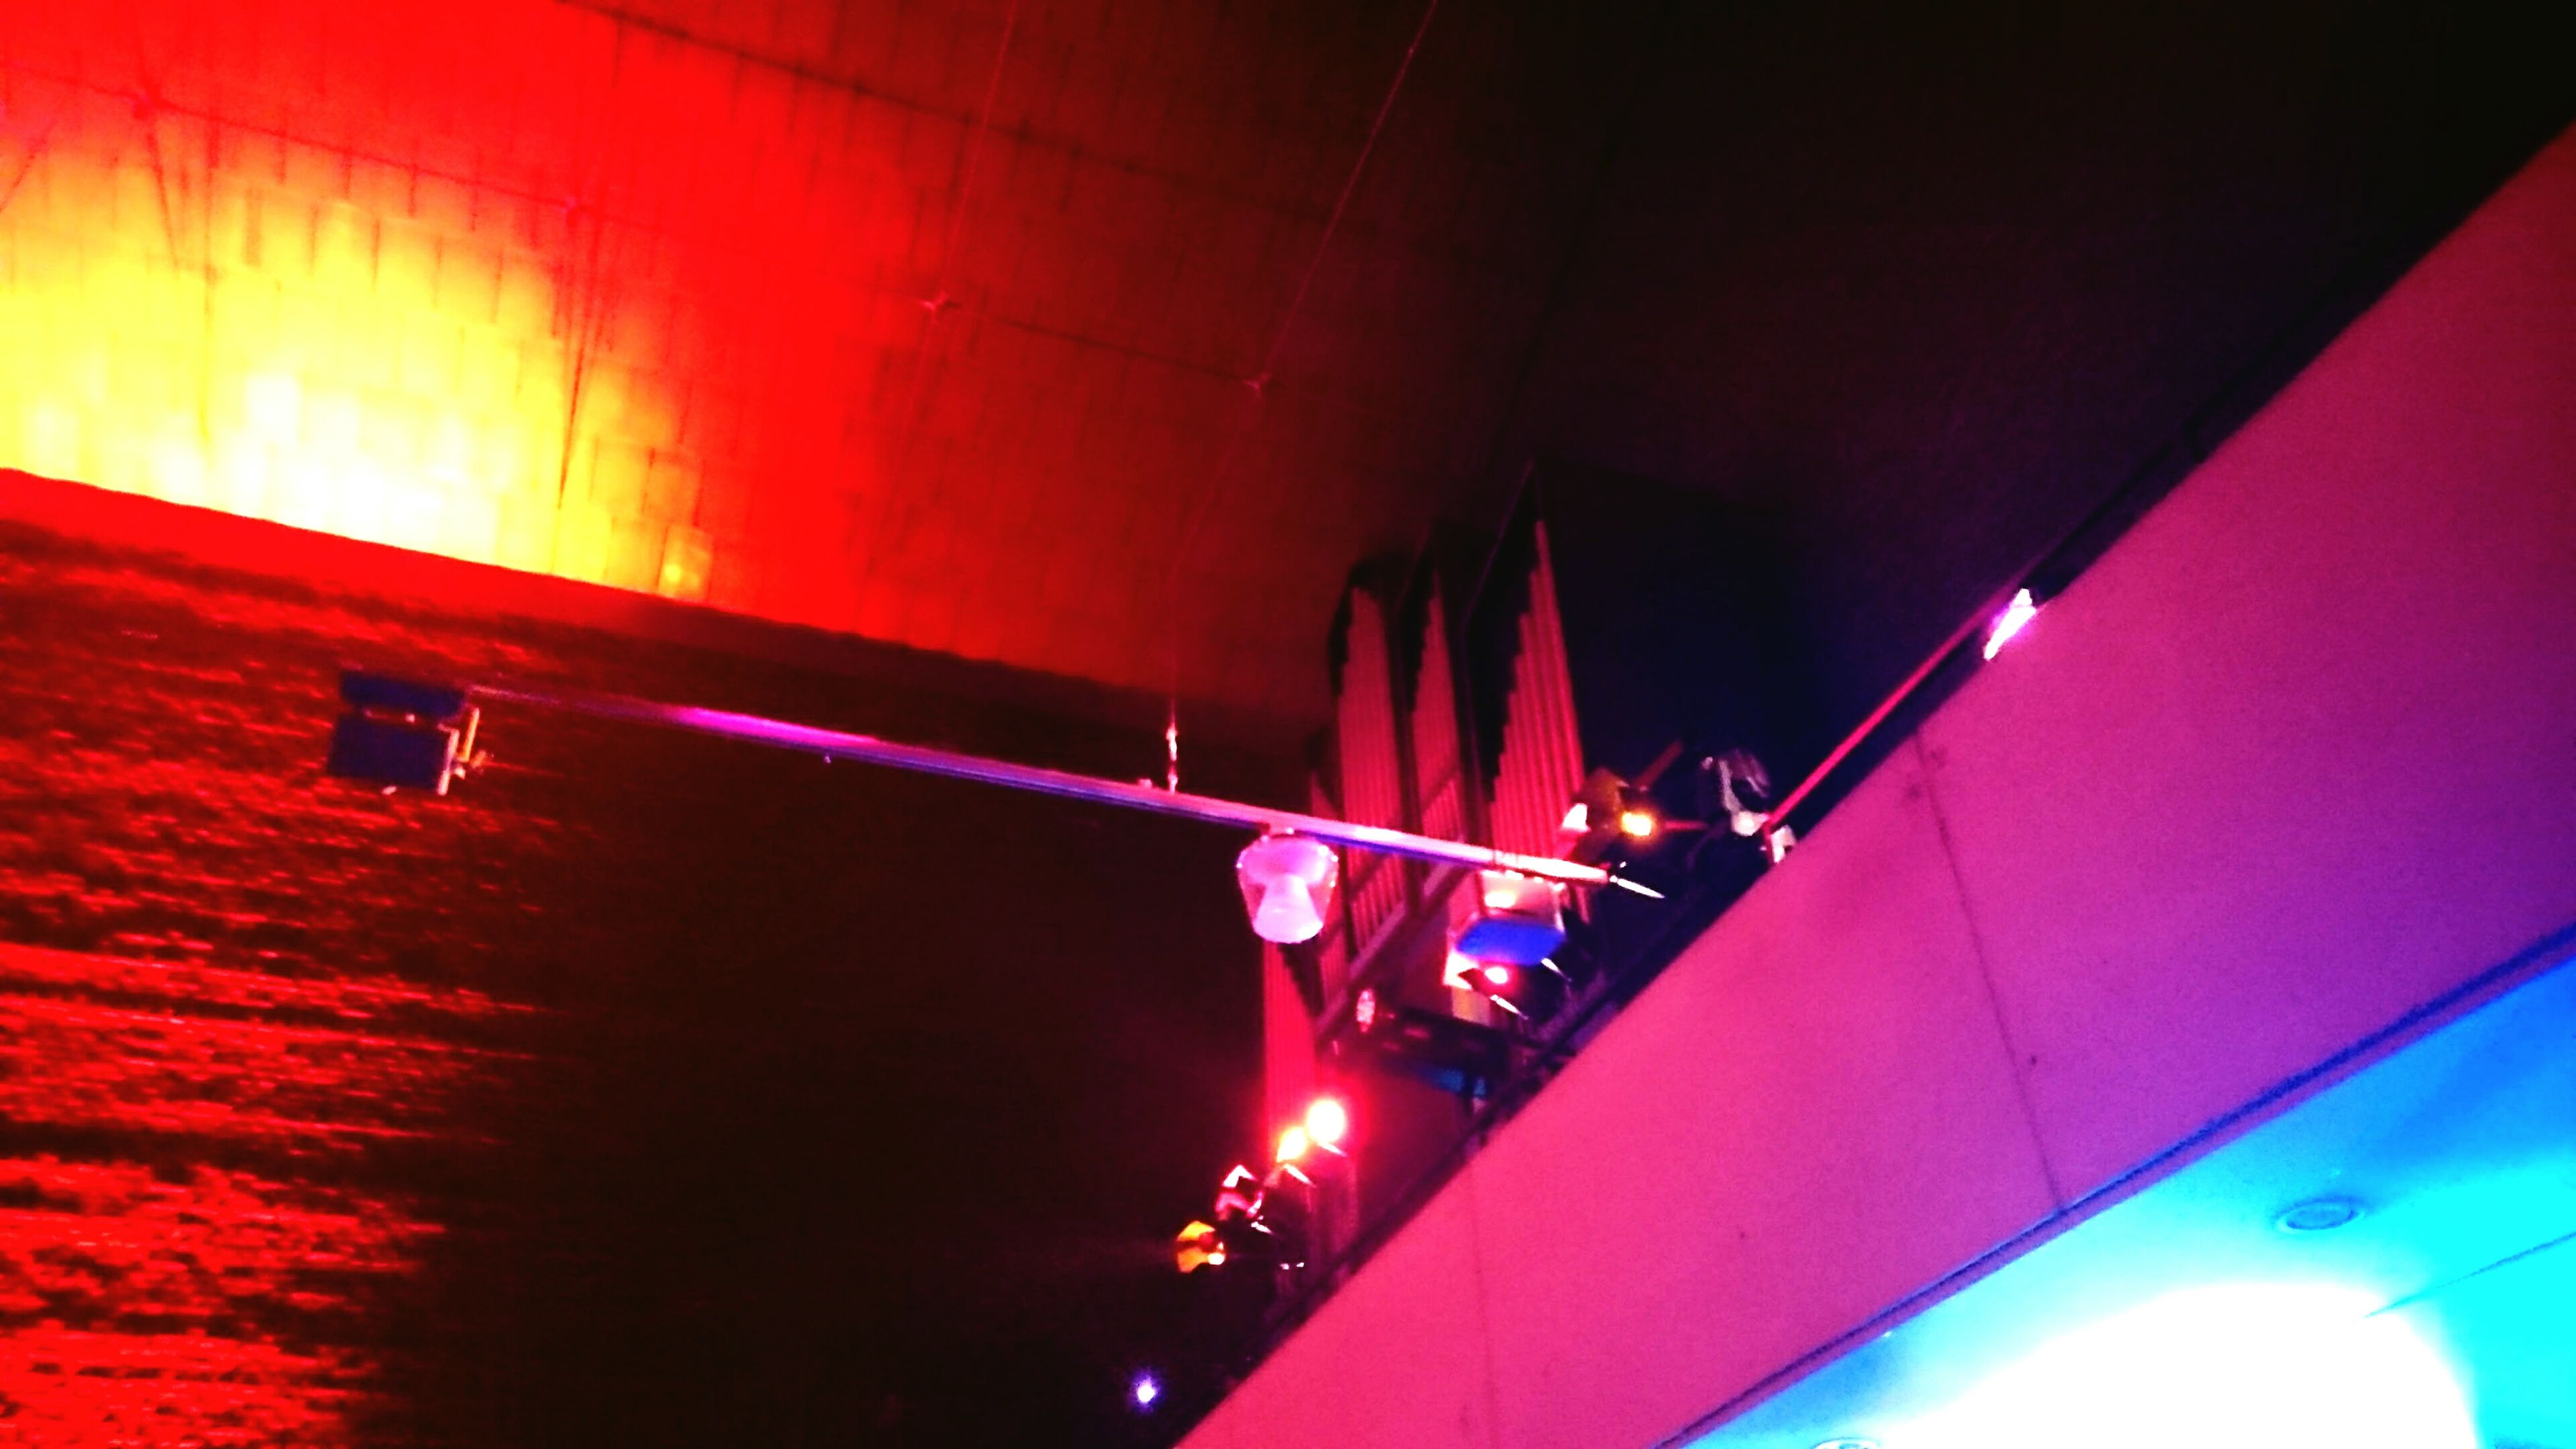 illuminated, lighting equipment, indoors, red, no people, arts culture and entertainment, close-up, day